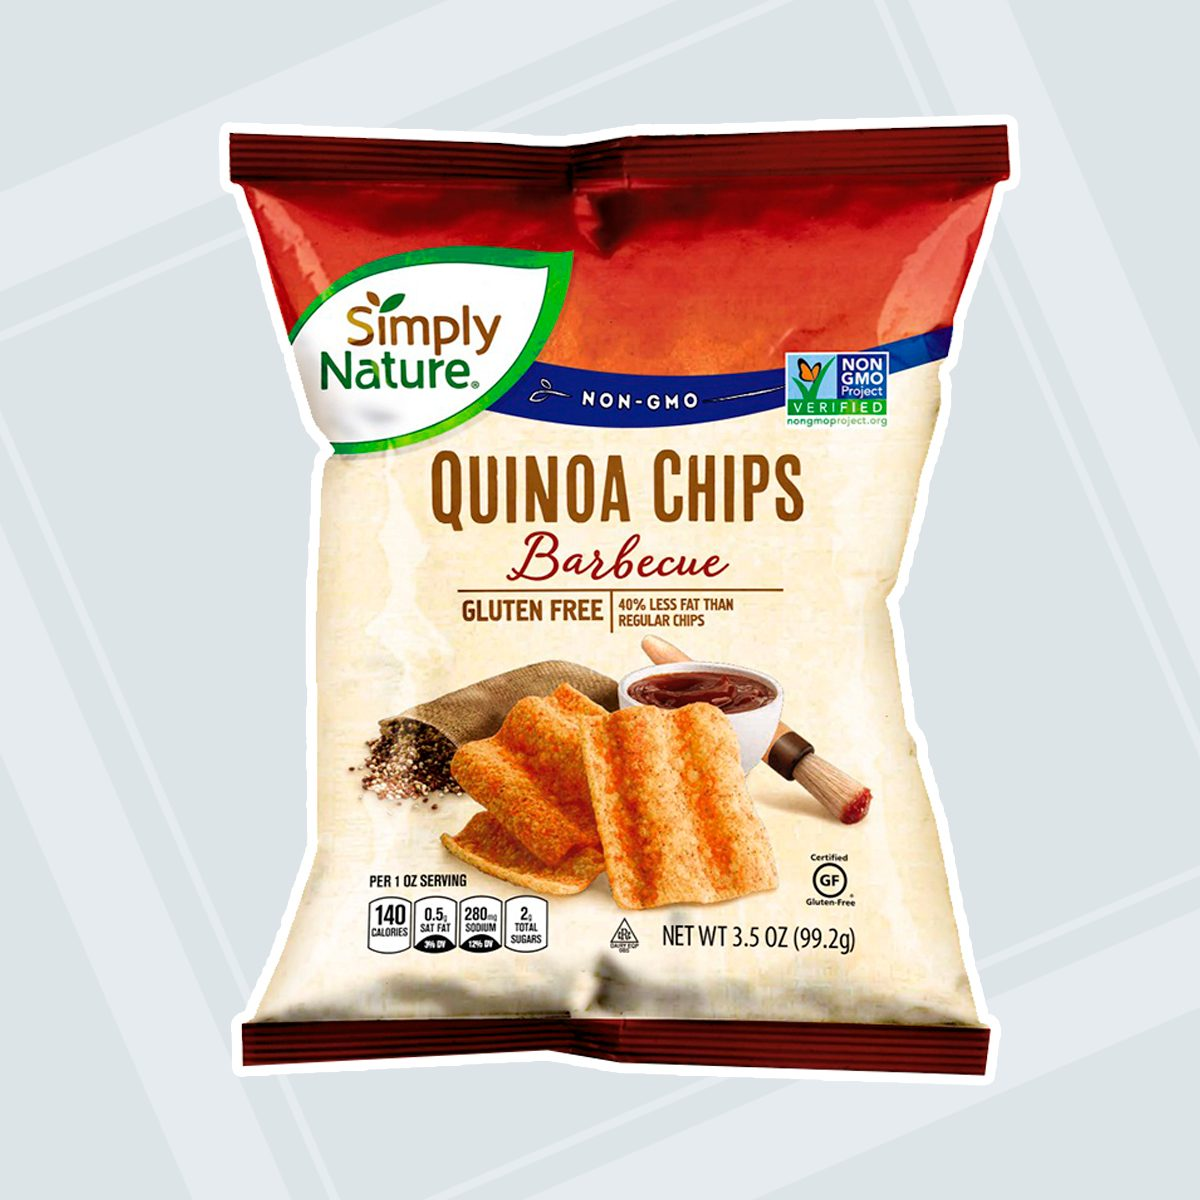 Simply Nature Quinoa Chips BBQ